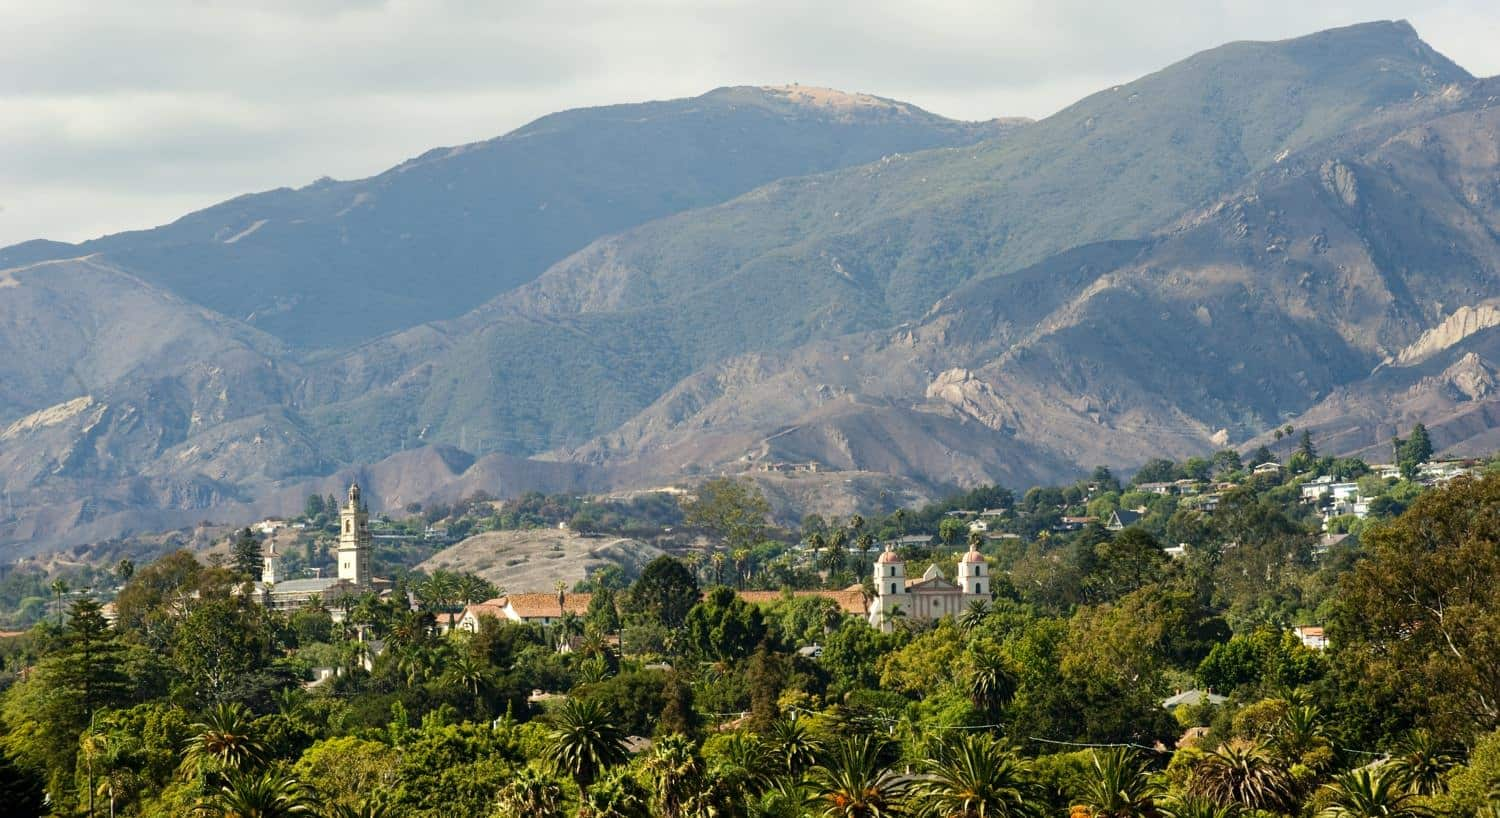 Distant views of Santa Barbar nestled in greenery against a backdrop of mountains